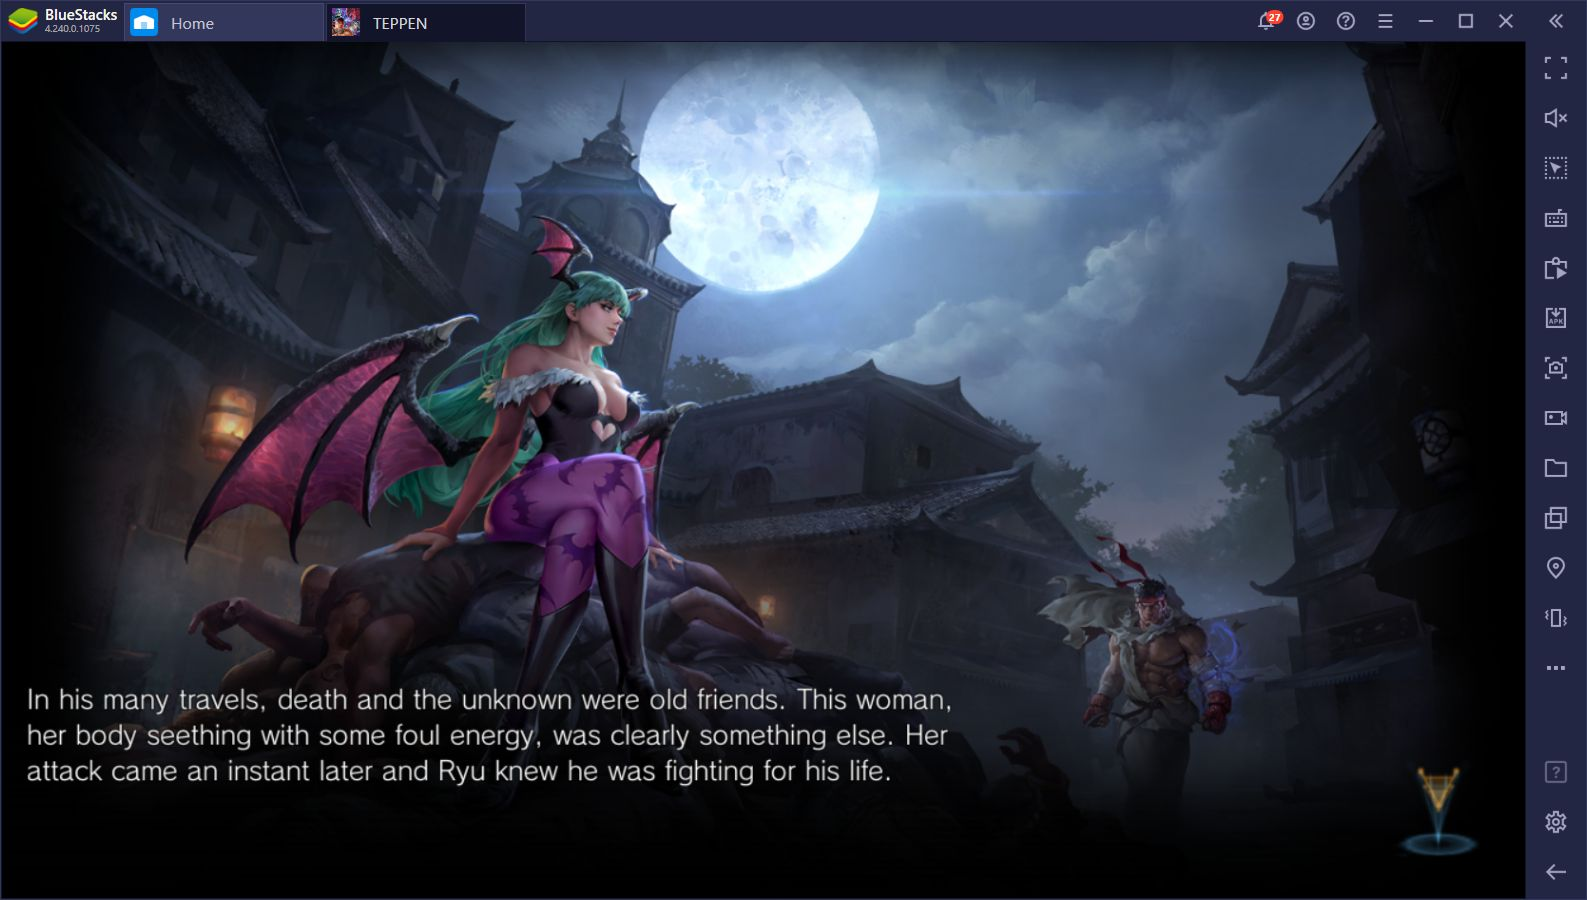 How to Play TEPPEN on PC With BlueStacks